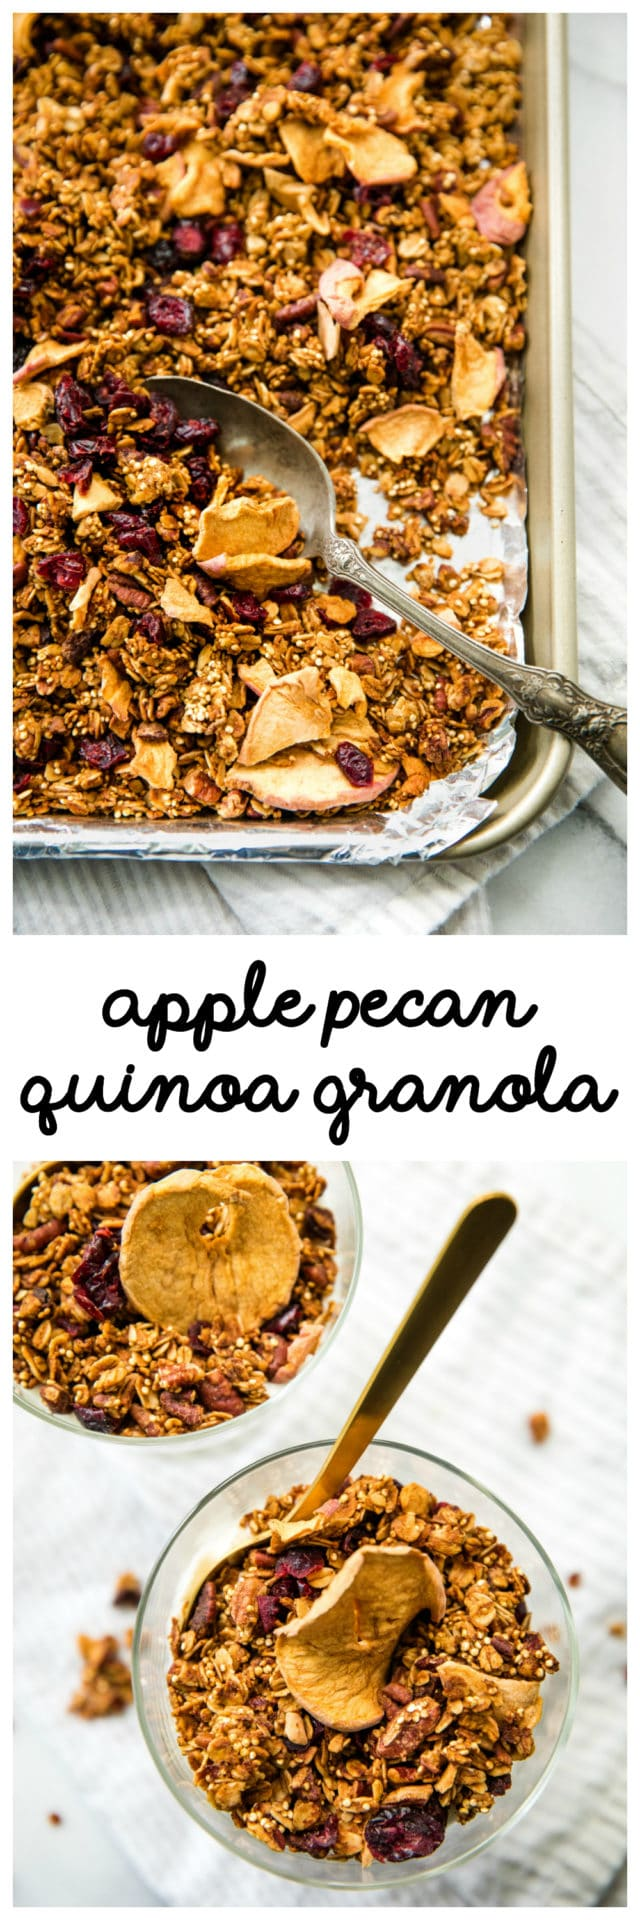 pinterest image for Apple Pecan Quinoa Granola